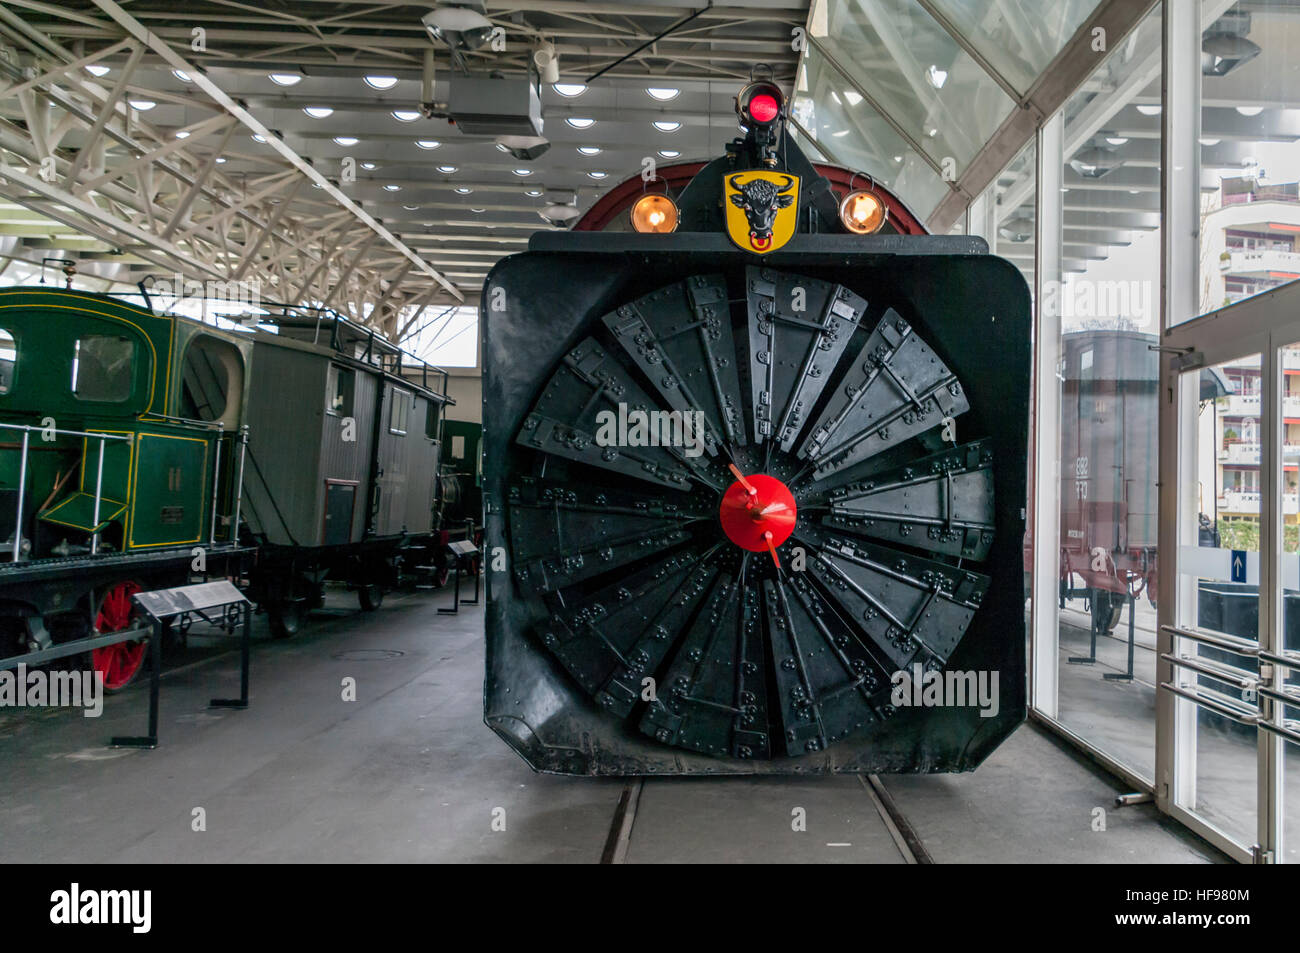 Front view of the Xrot m No 100, a steam-powered rotary snowplow built in 1896 by Henschel. Swiss Museum of Transport, - Stock Image